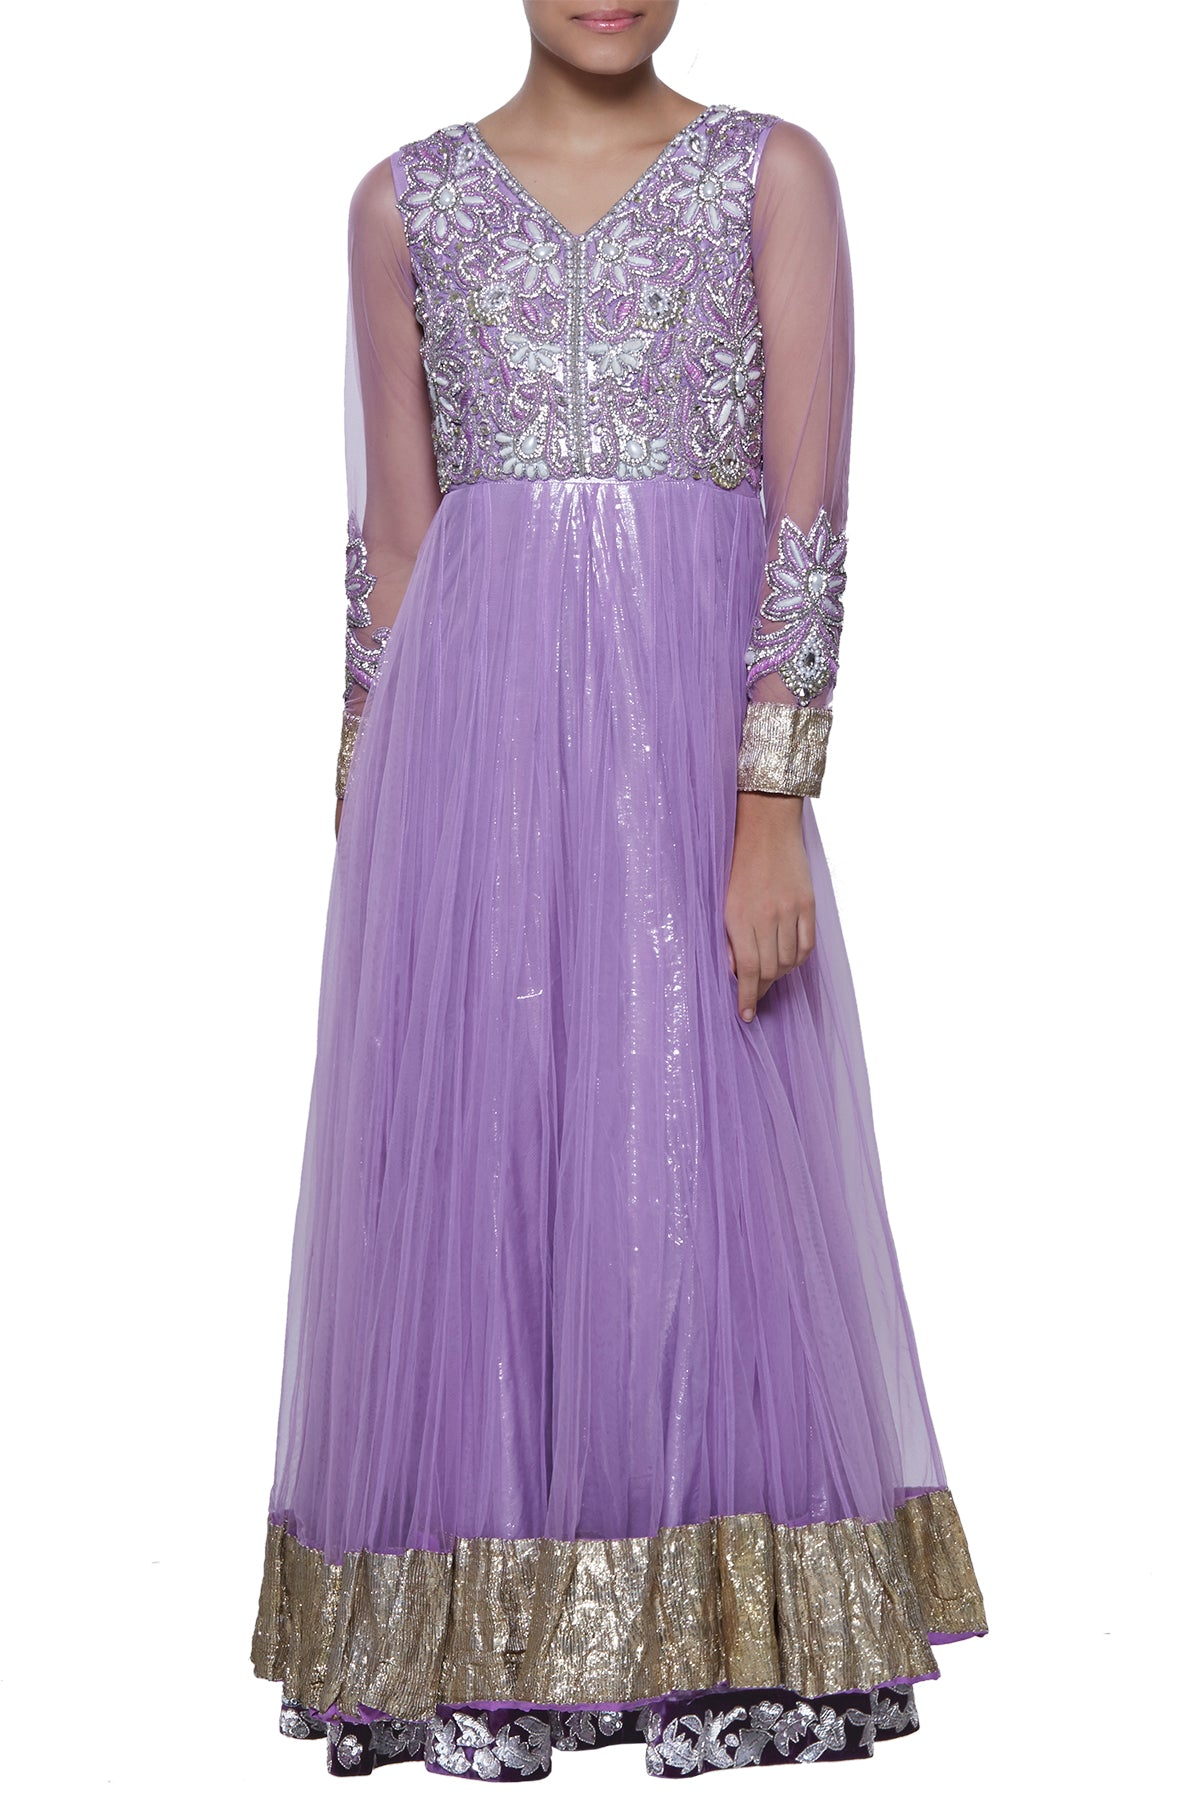 With a mirage of pearl stones, a lilac embroidered bodice and full sleeves in net - glide into your next traditional function with grace. Seal the deal with the outfit's gota border which makes it stylish head to toe.